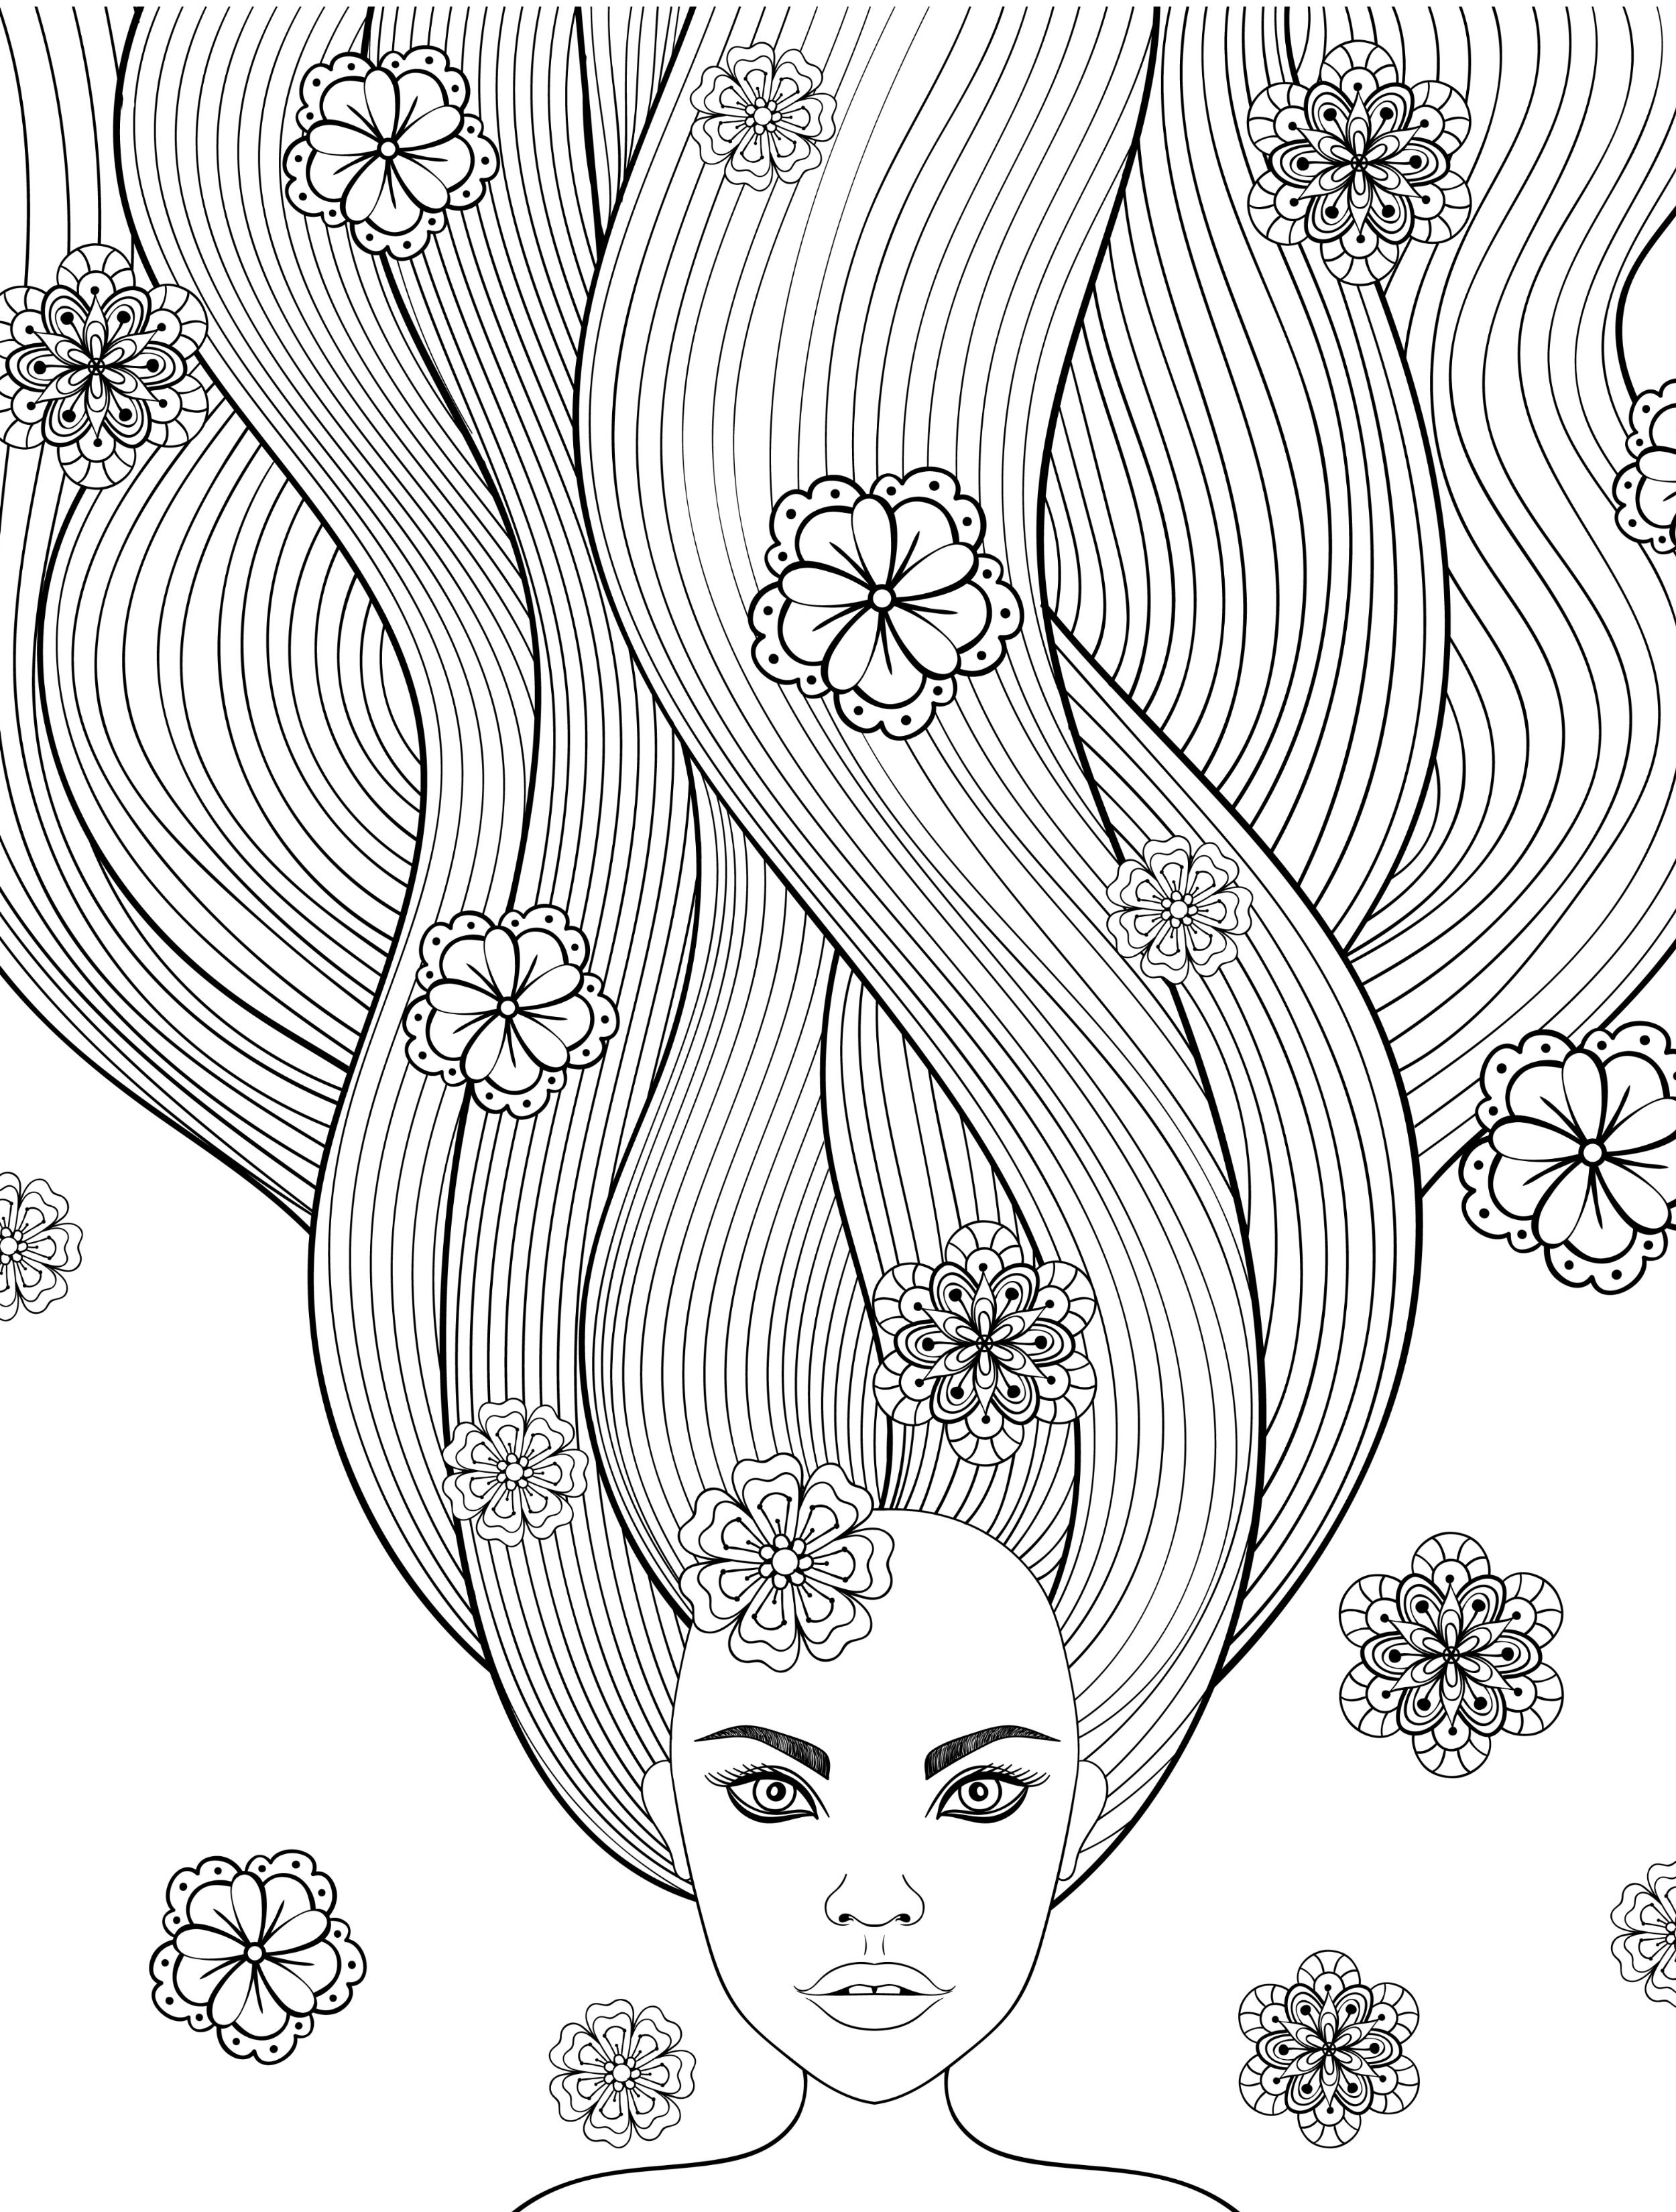 hair colouring pages pin by jackson r chamberlin on coloring ideas coloring pages hair colouring